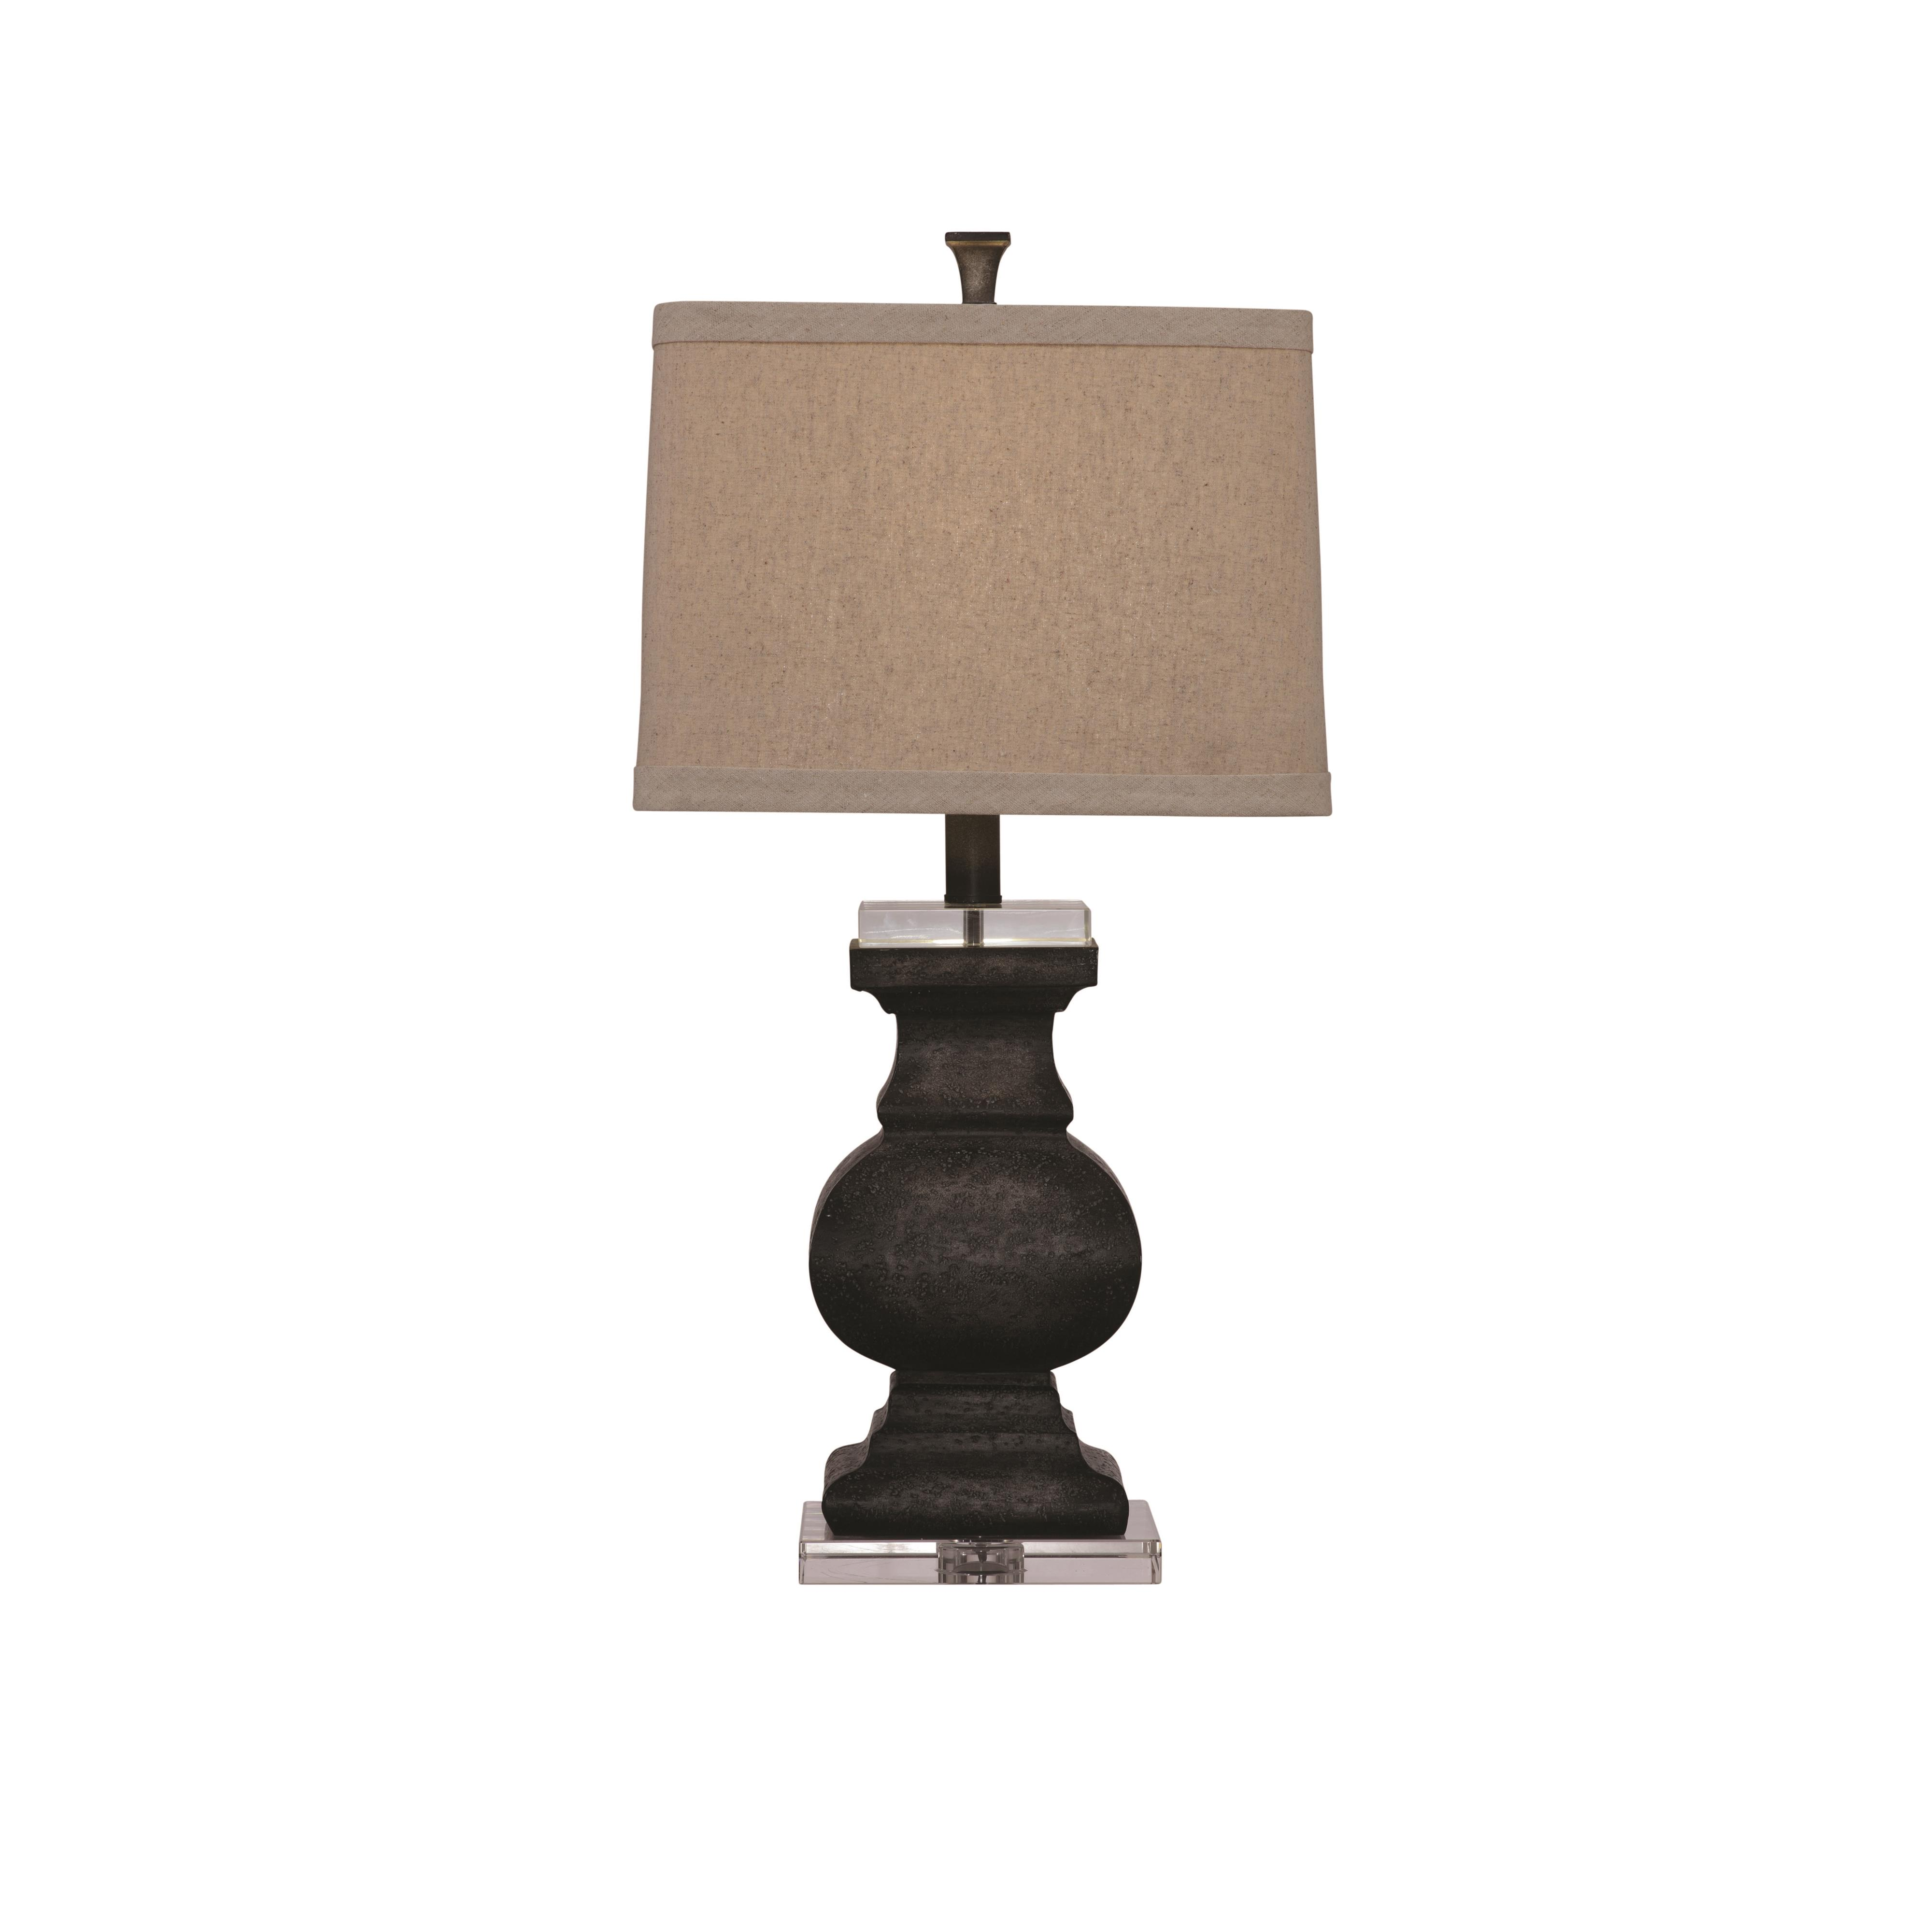 Belgian Luxe Carmel Table Lamp by Bassett Mirror at Alison Craig Home Furnishings